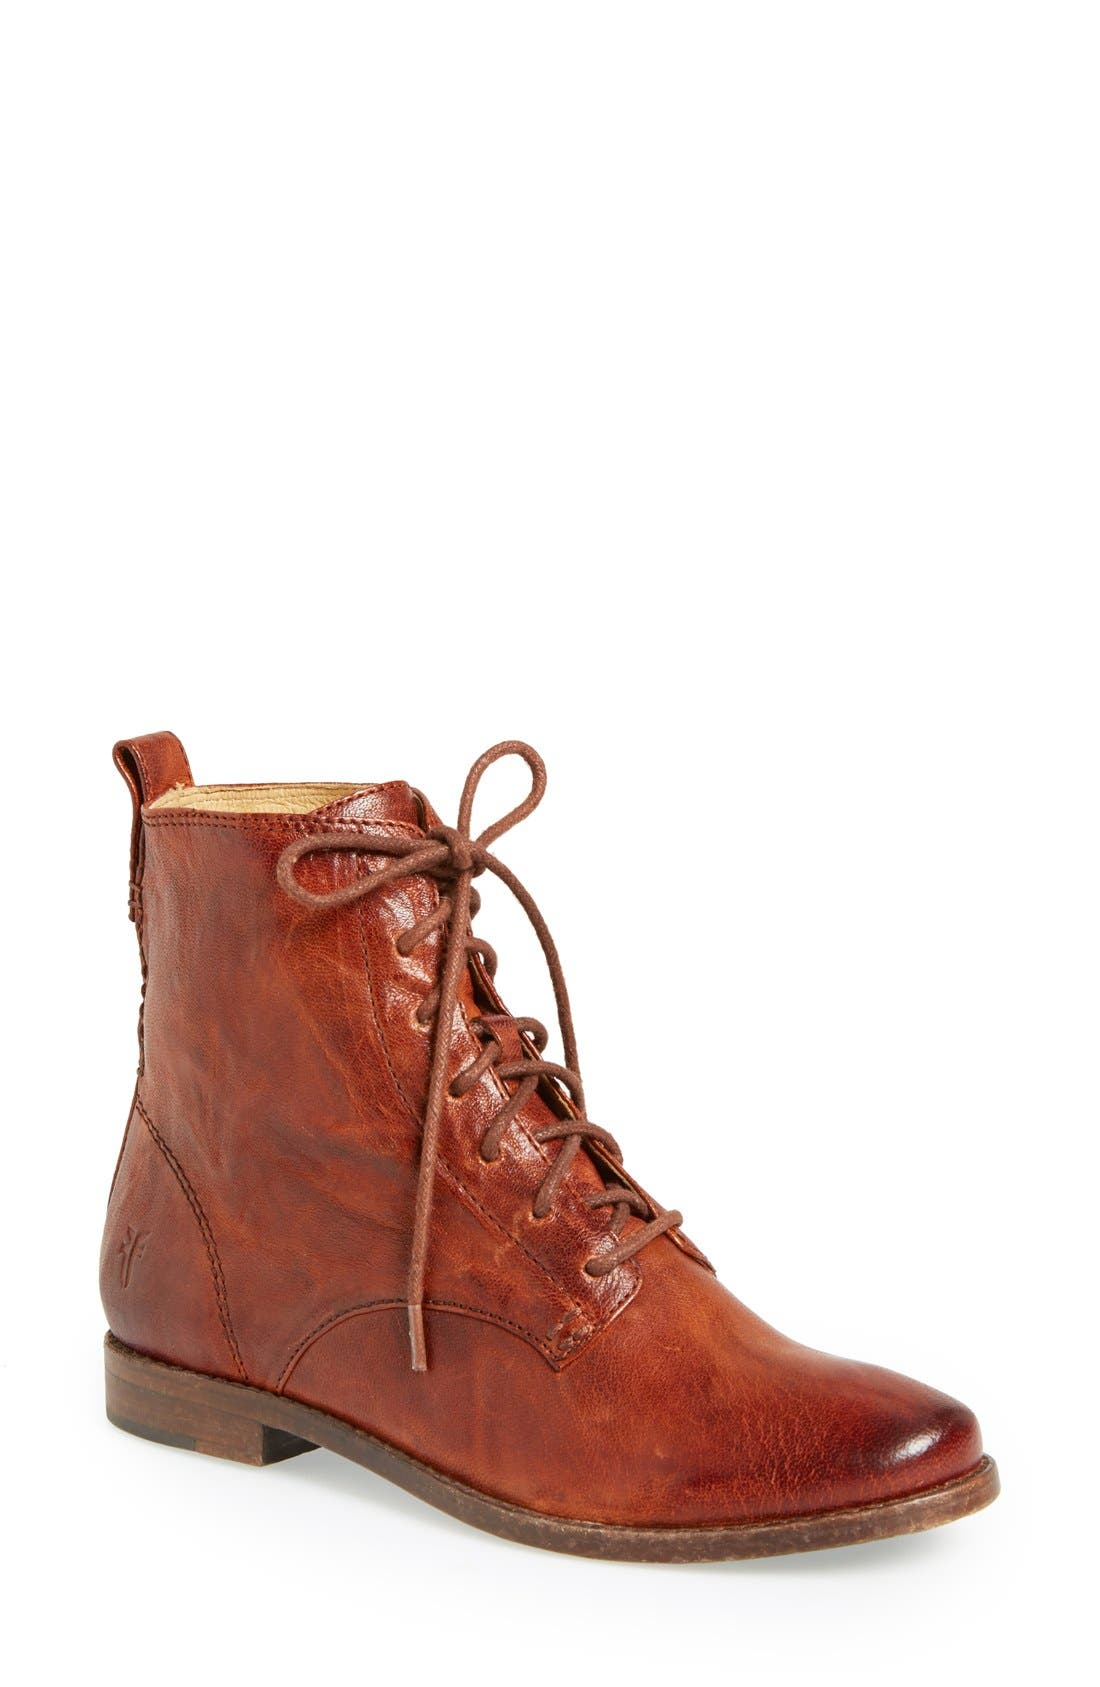 Main Image - Frye 'Anna' Lace-Up Boot (Women)